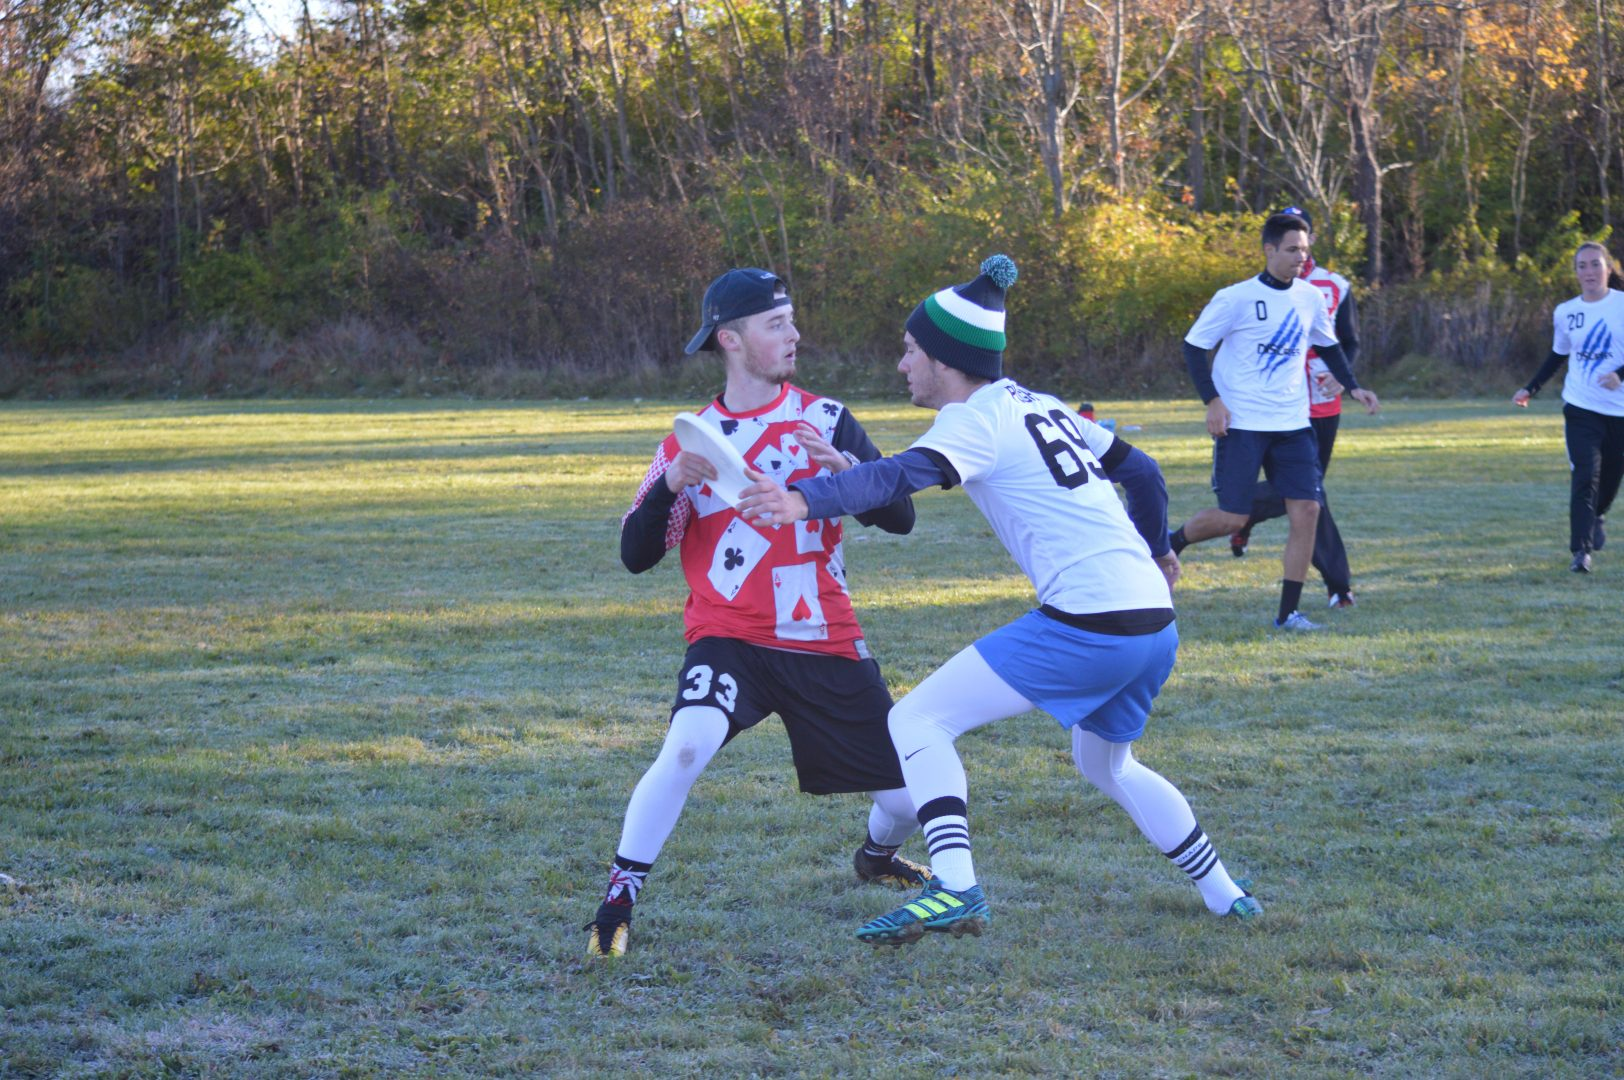 In this file photo, senior exercise science major Ben Hooker looks upfield during an ultimate frisbee game.